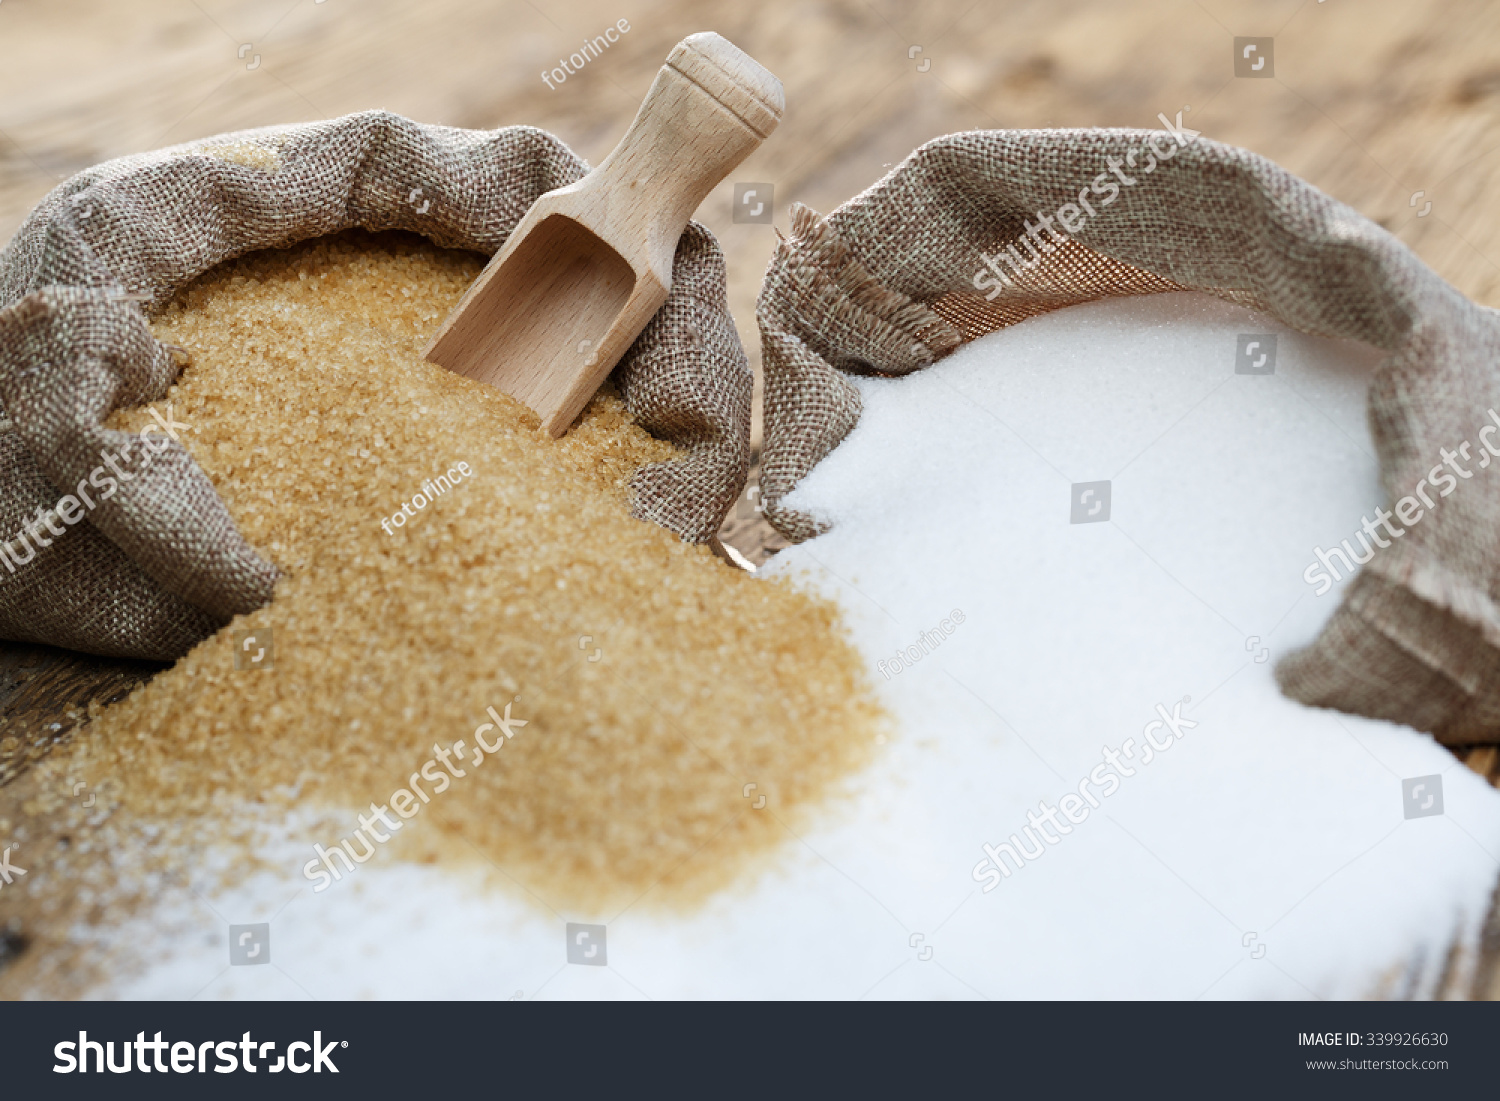 Various types of sugar, brown sugar and white  #339926630